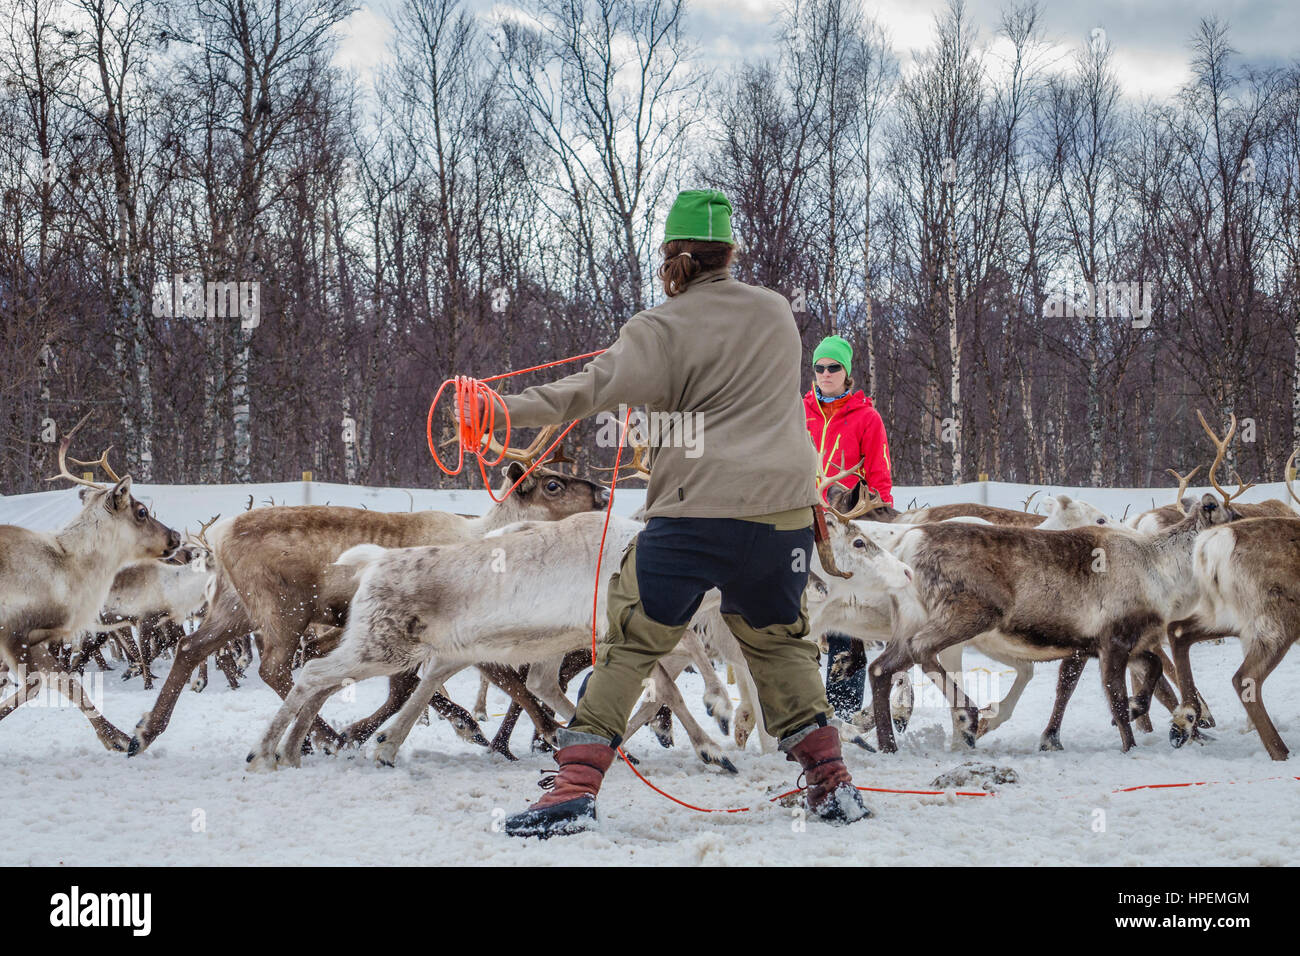 Reindeer Herding, The Laponian Area, a world heritage location, Northern Sweden - Stock Image